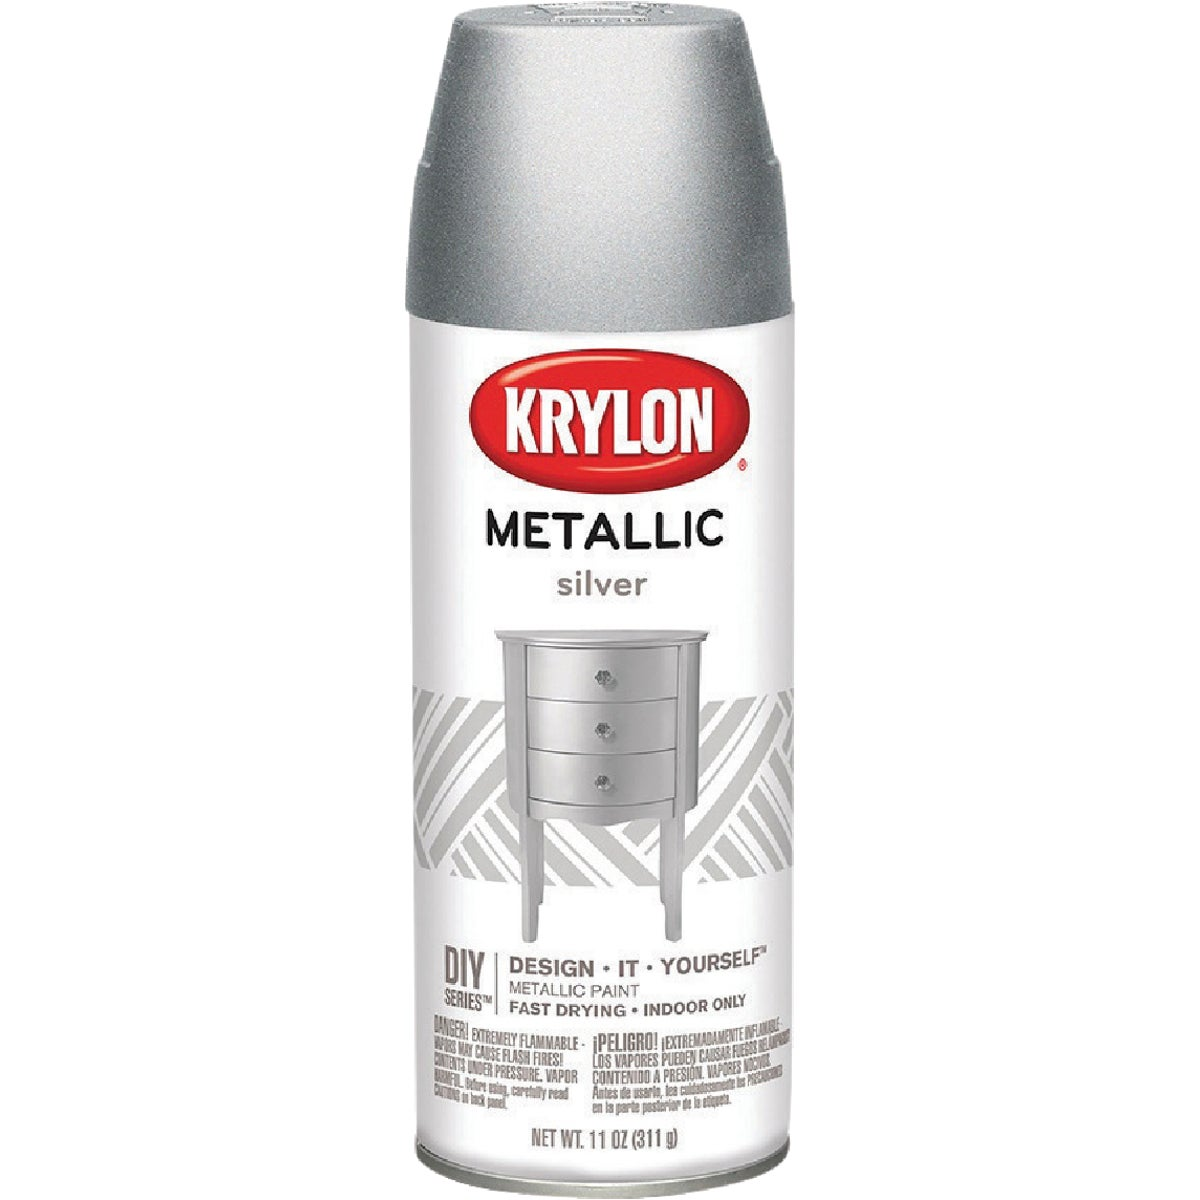 METLC SILVER SPRAY PAINT